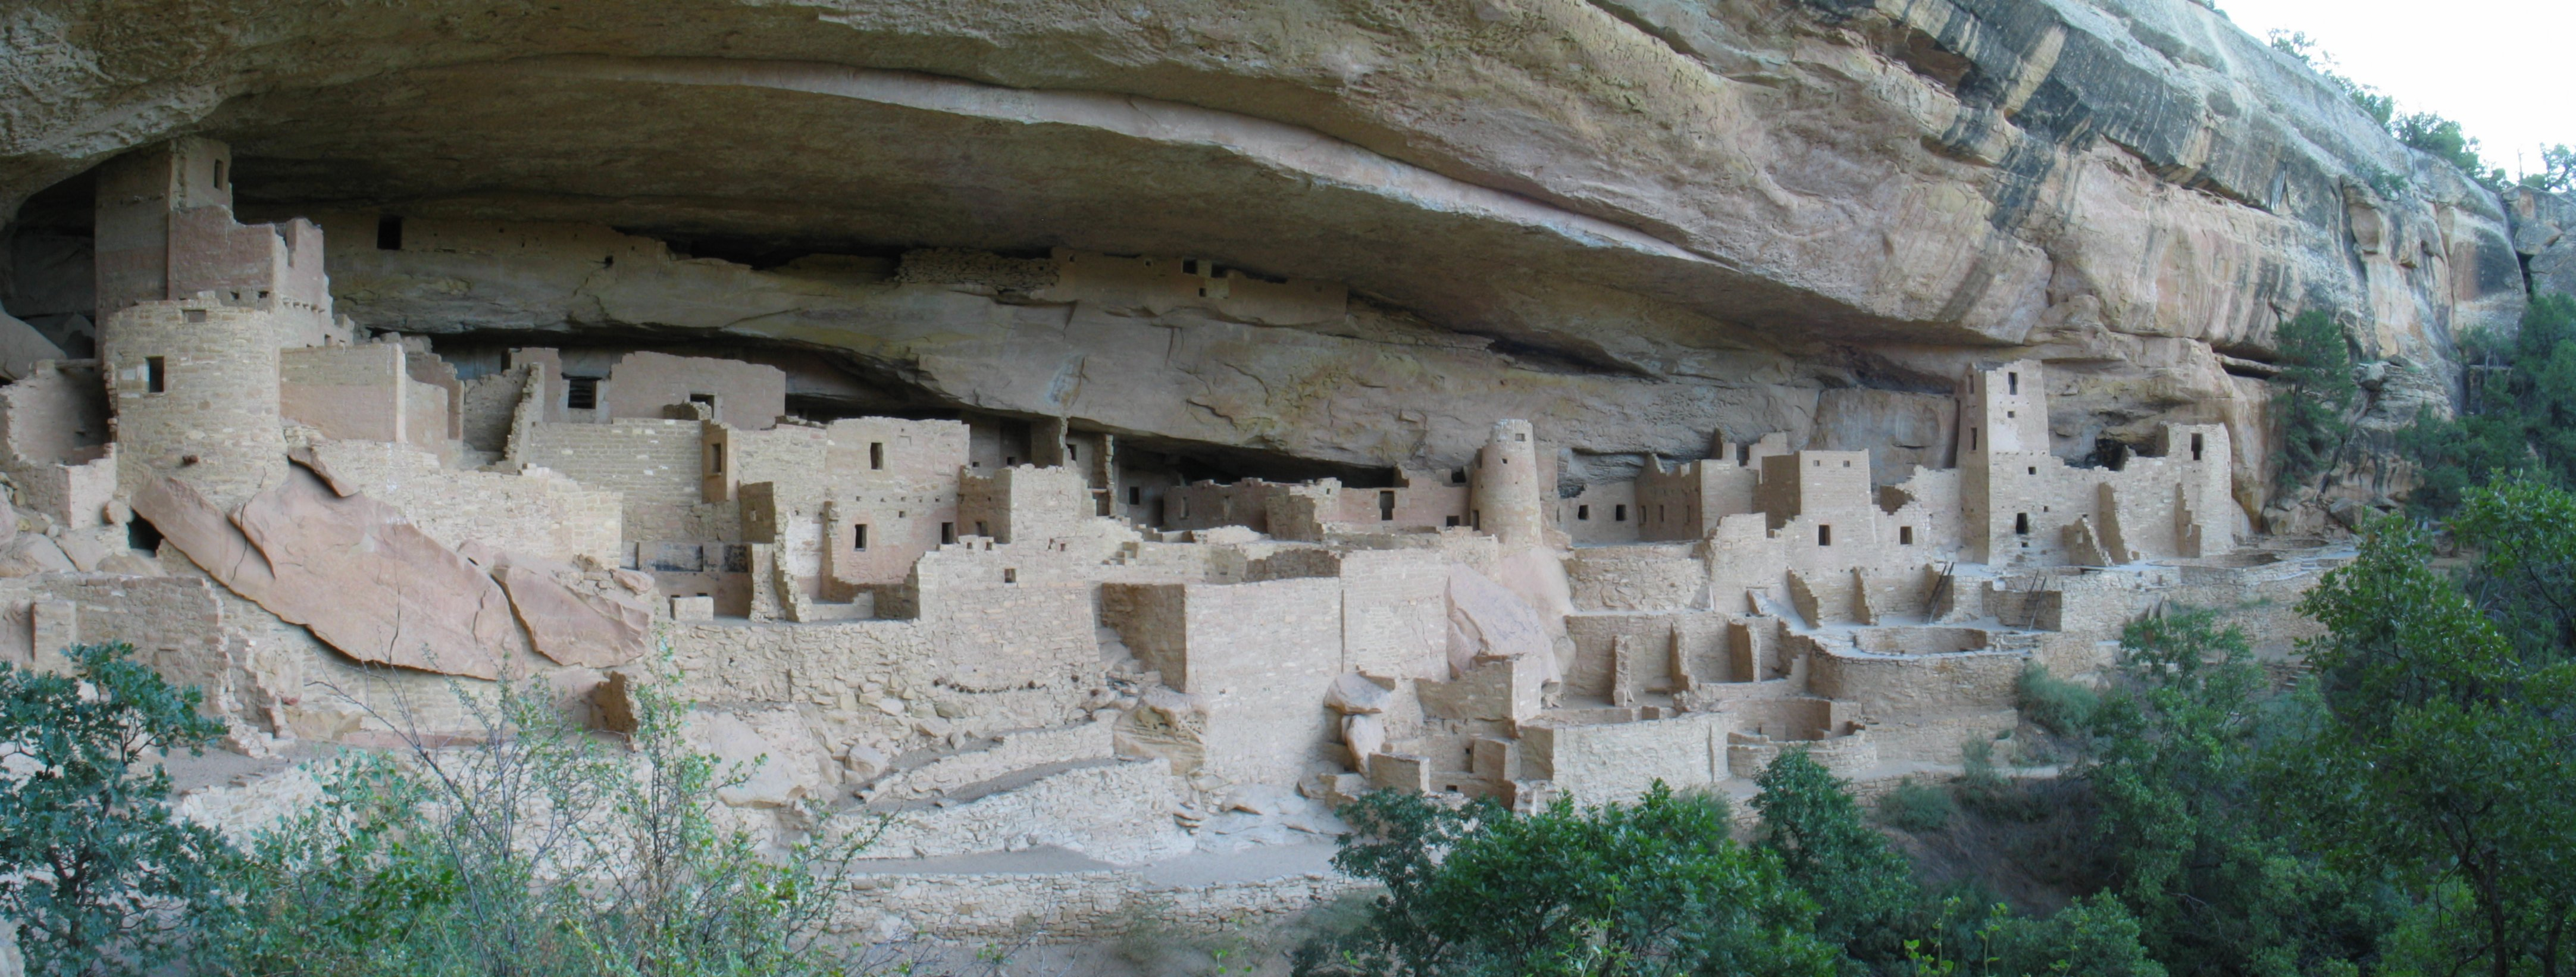 Cliff Palace at Mesa Verde taken by Ben Frantz Dale